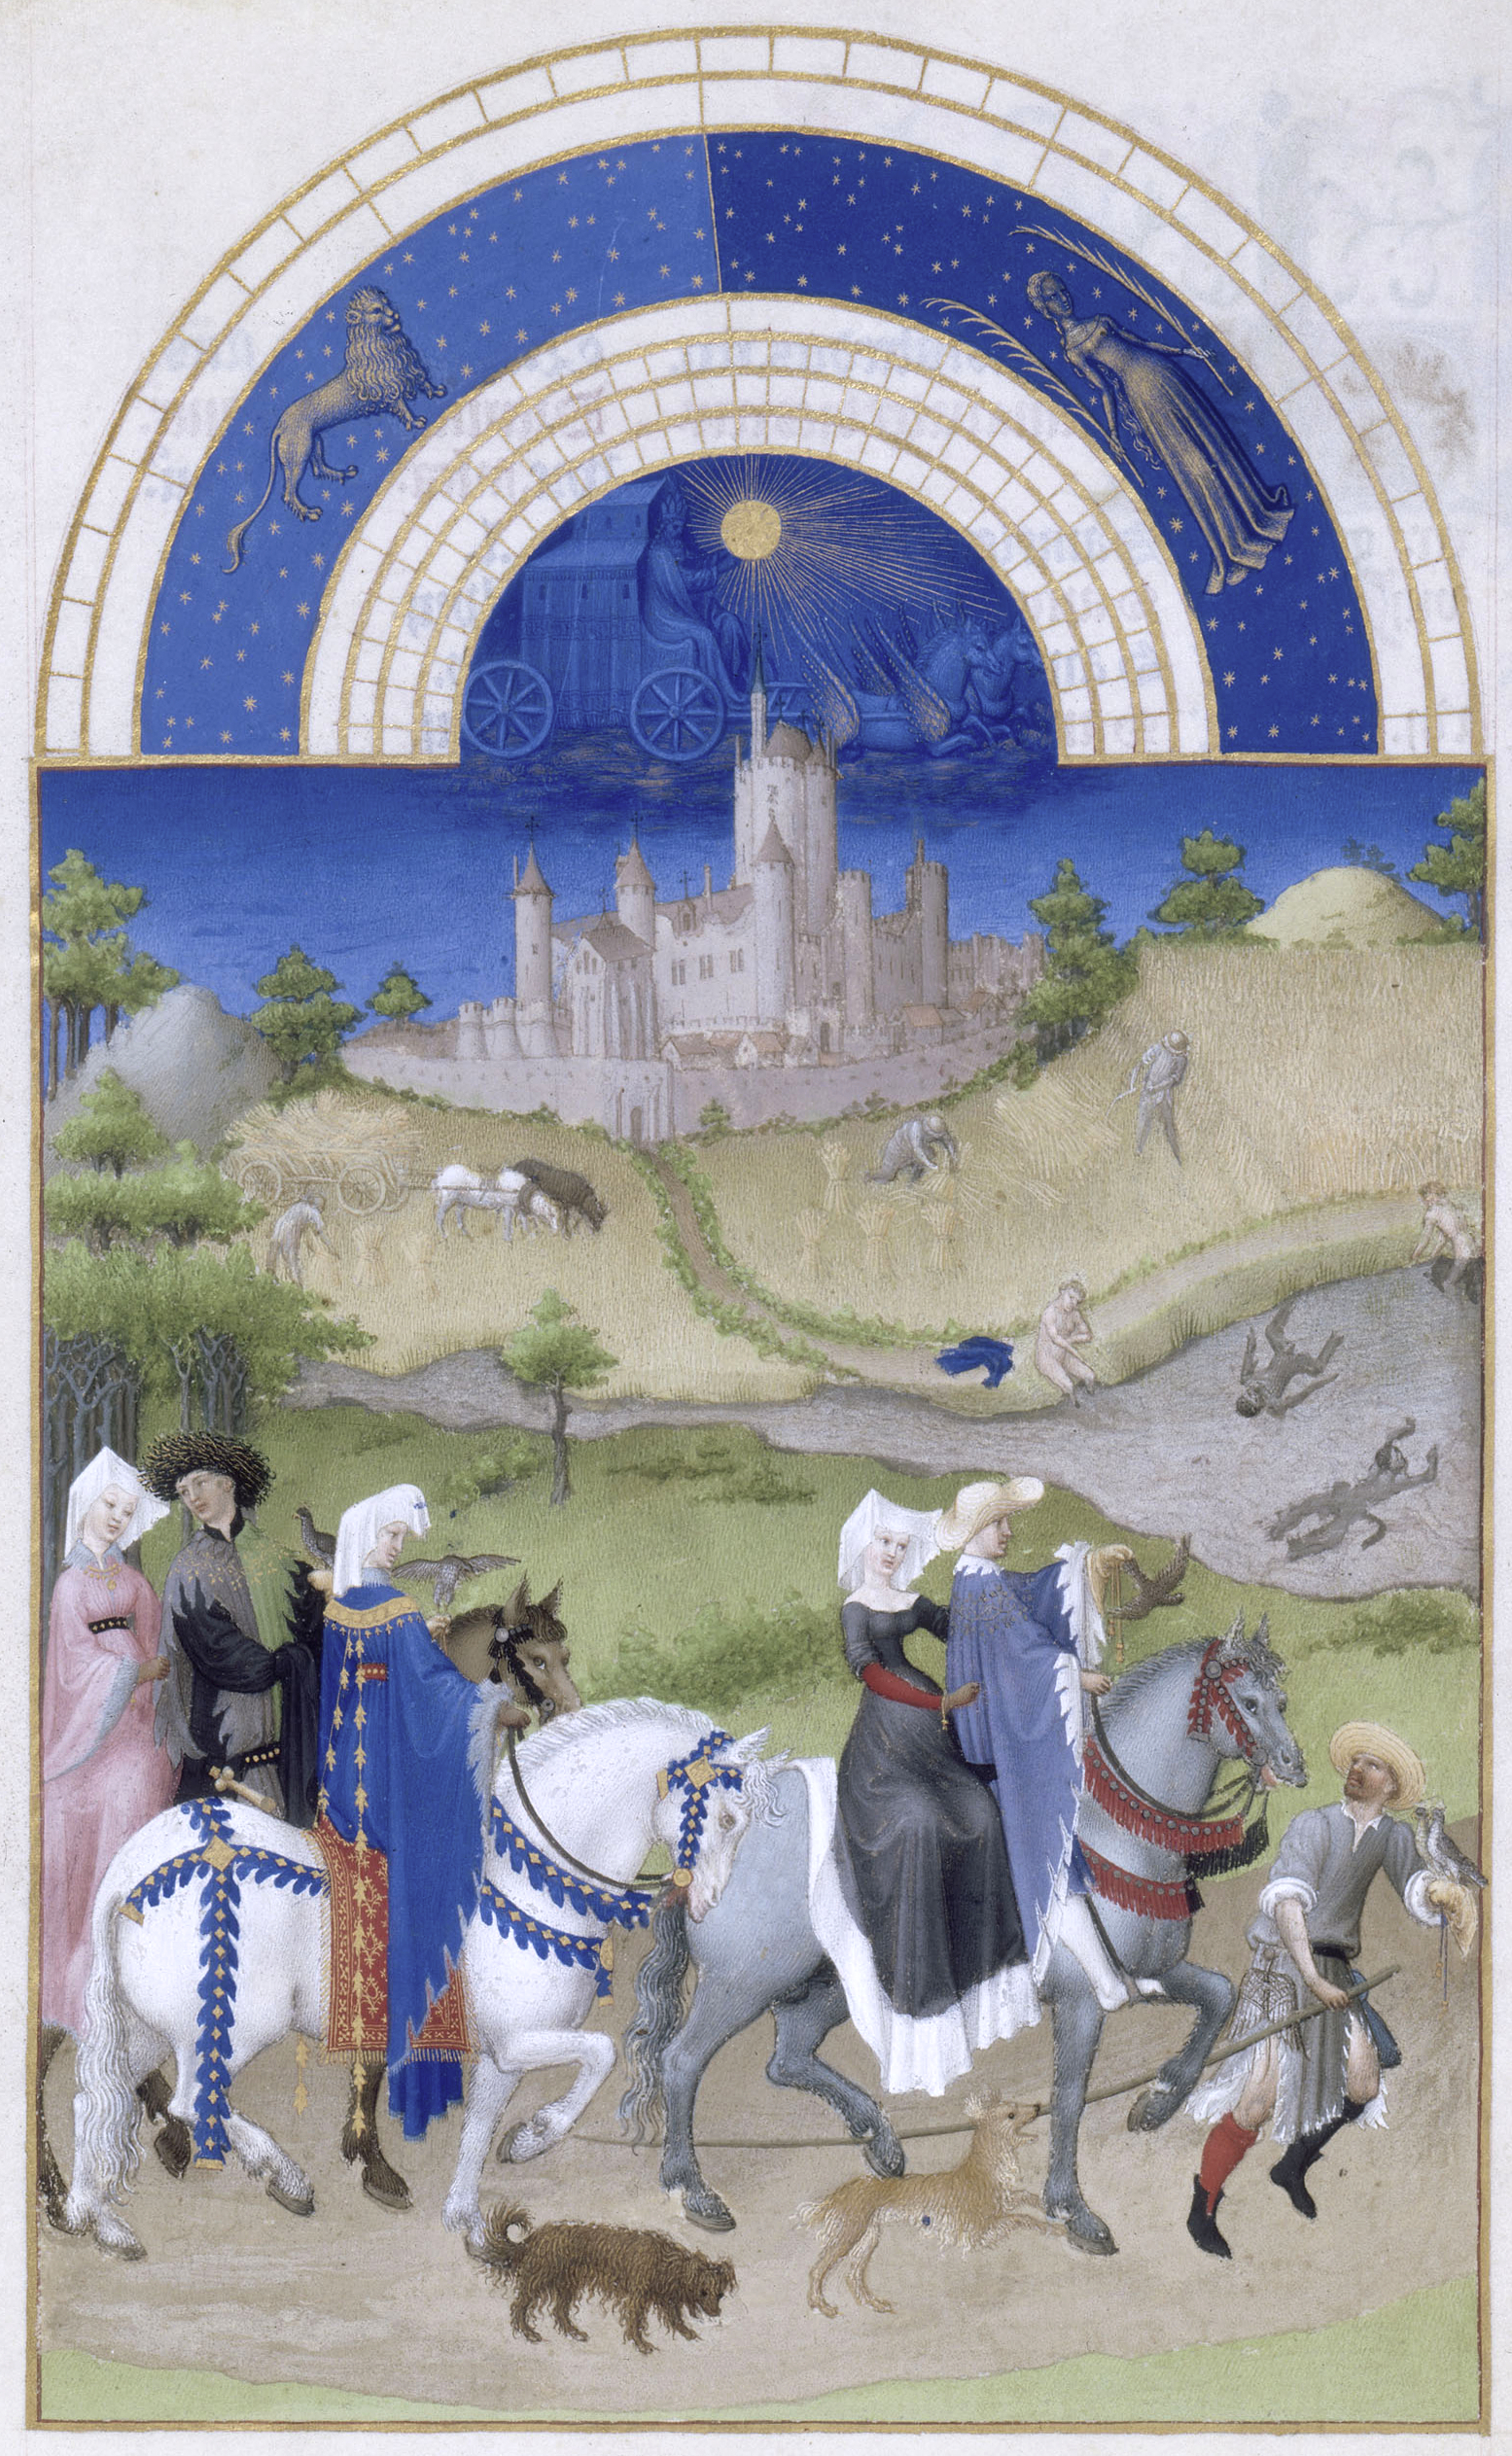 """Limbourg Brothers, """"The Book of Hours."""" Falconry, bathing."""